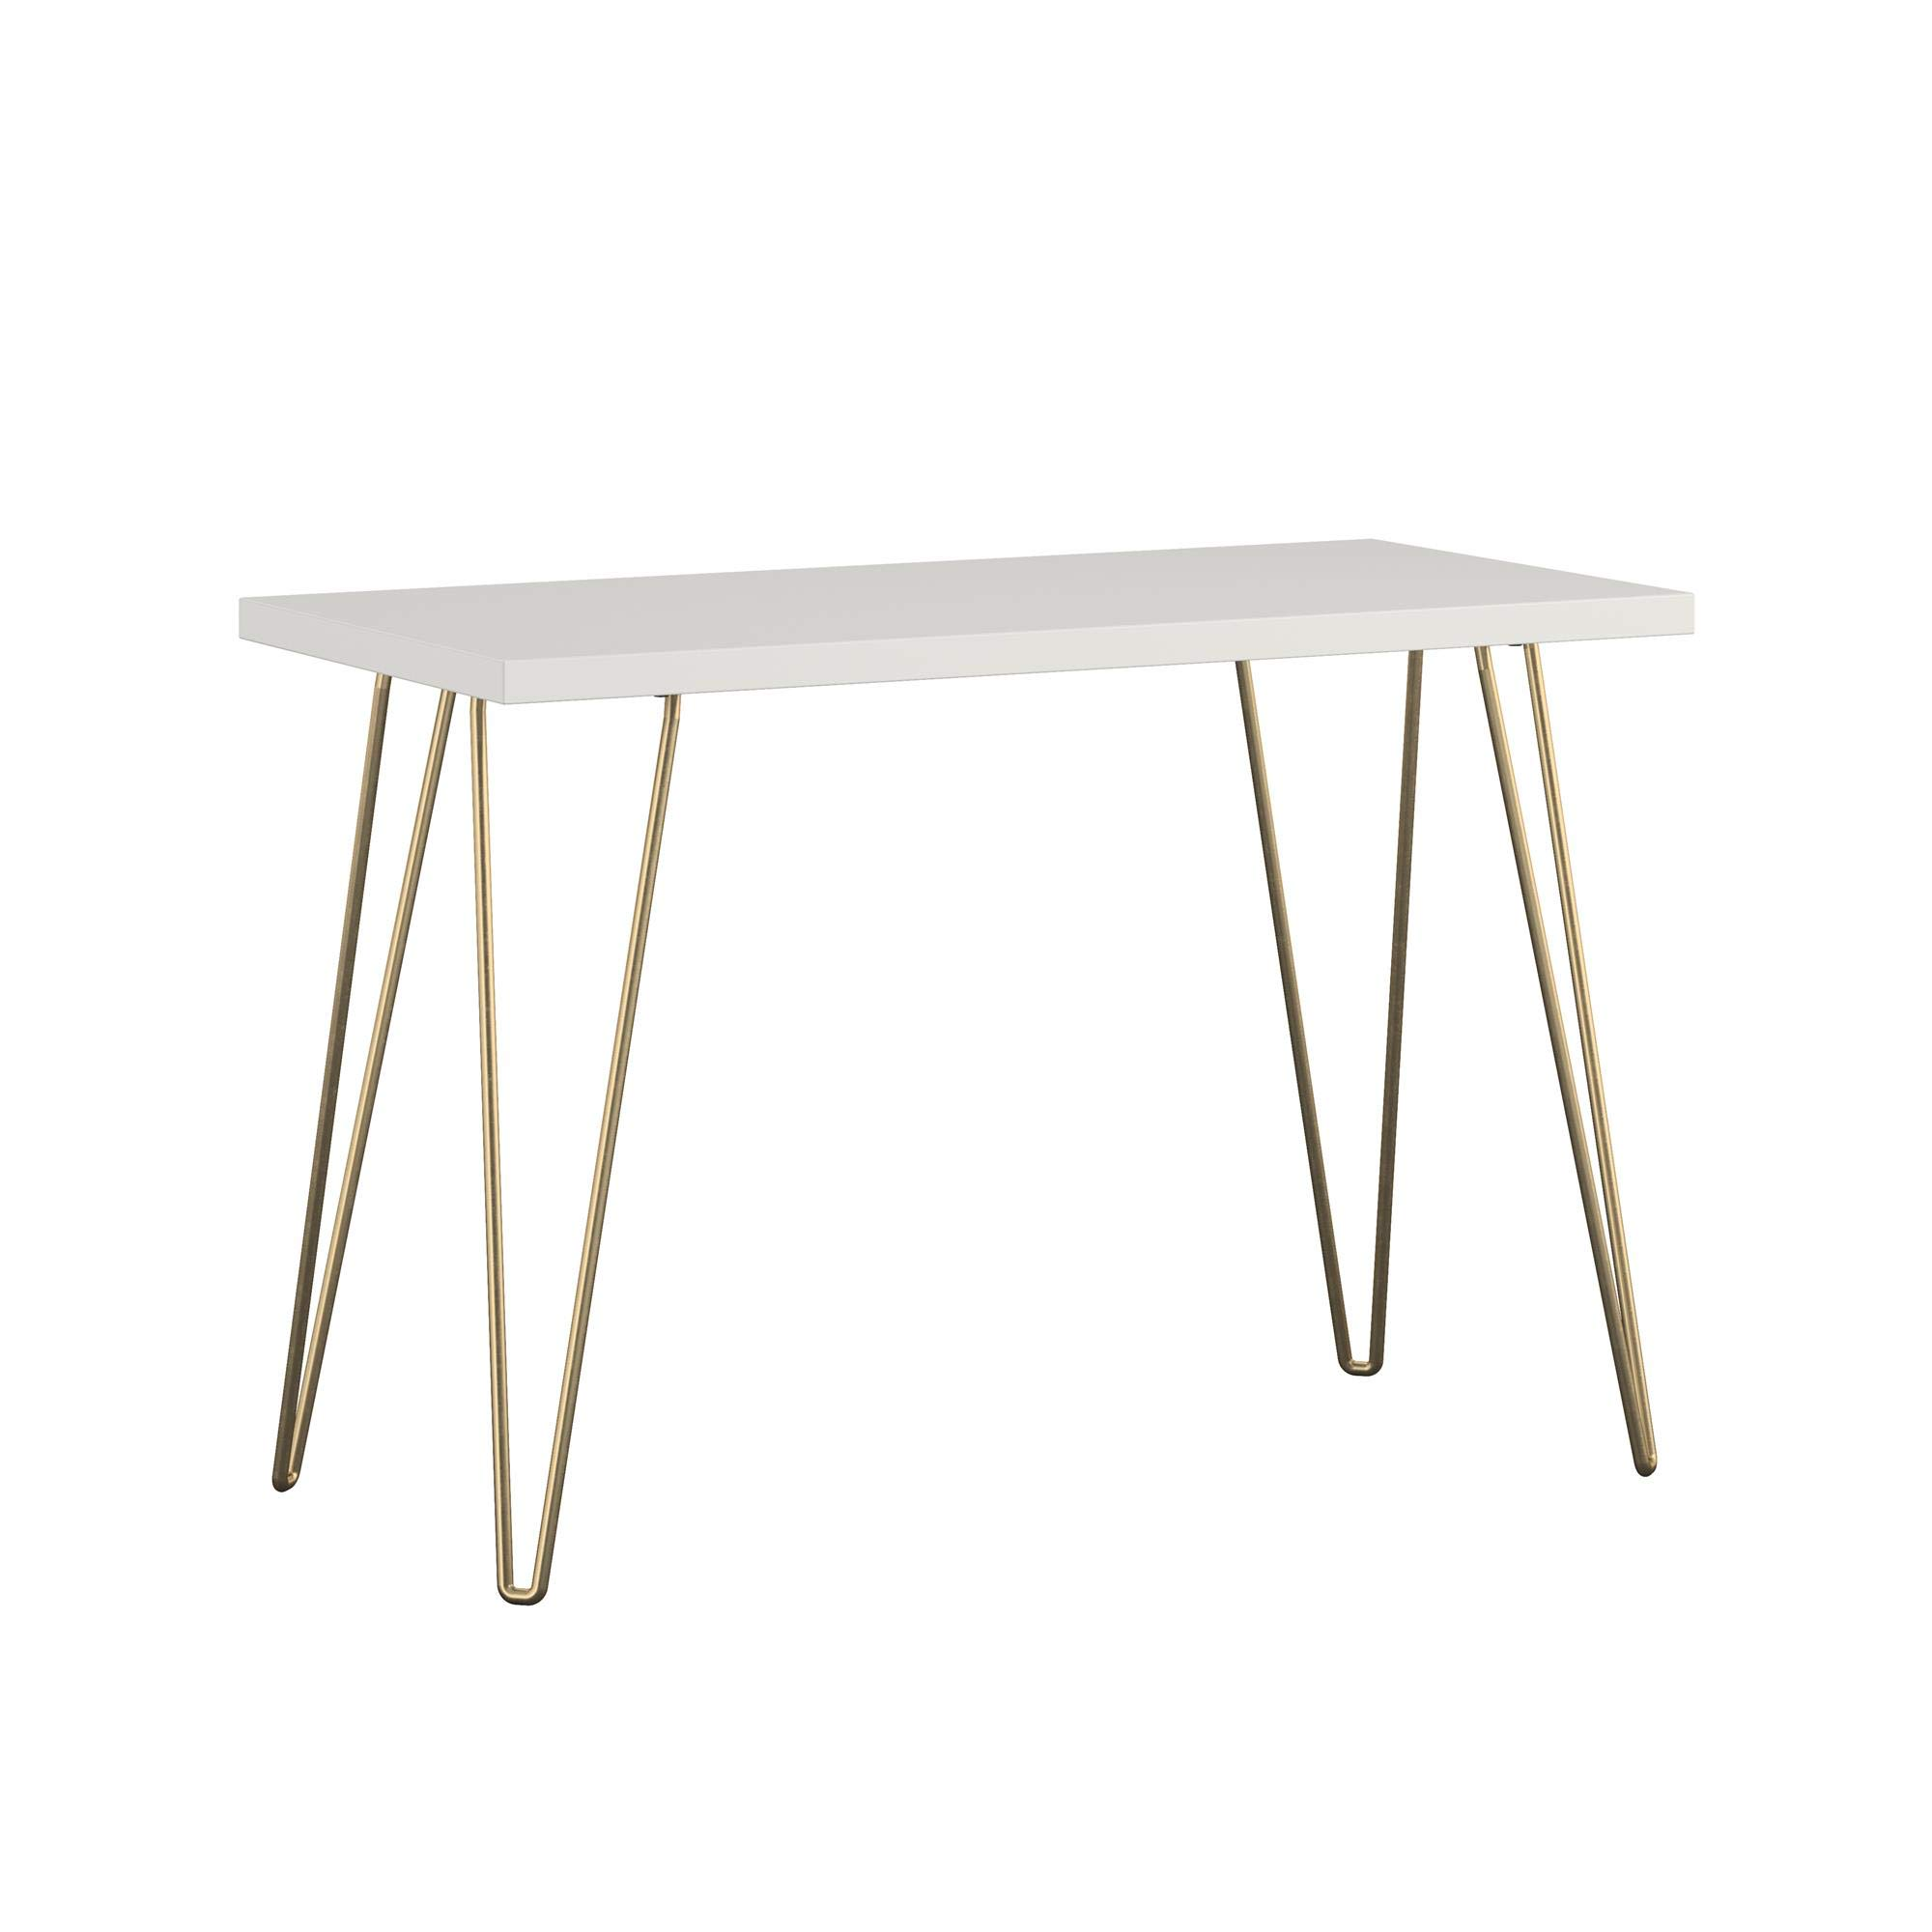 AmazonBasics Retro Hairpin Compact Computer Desk - Solid White with Matte Gold Legs